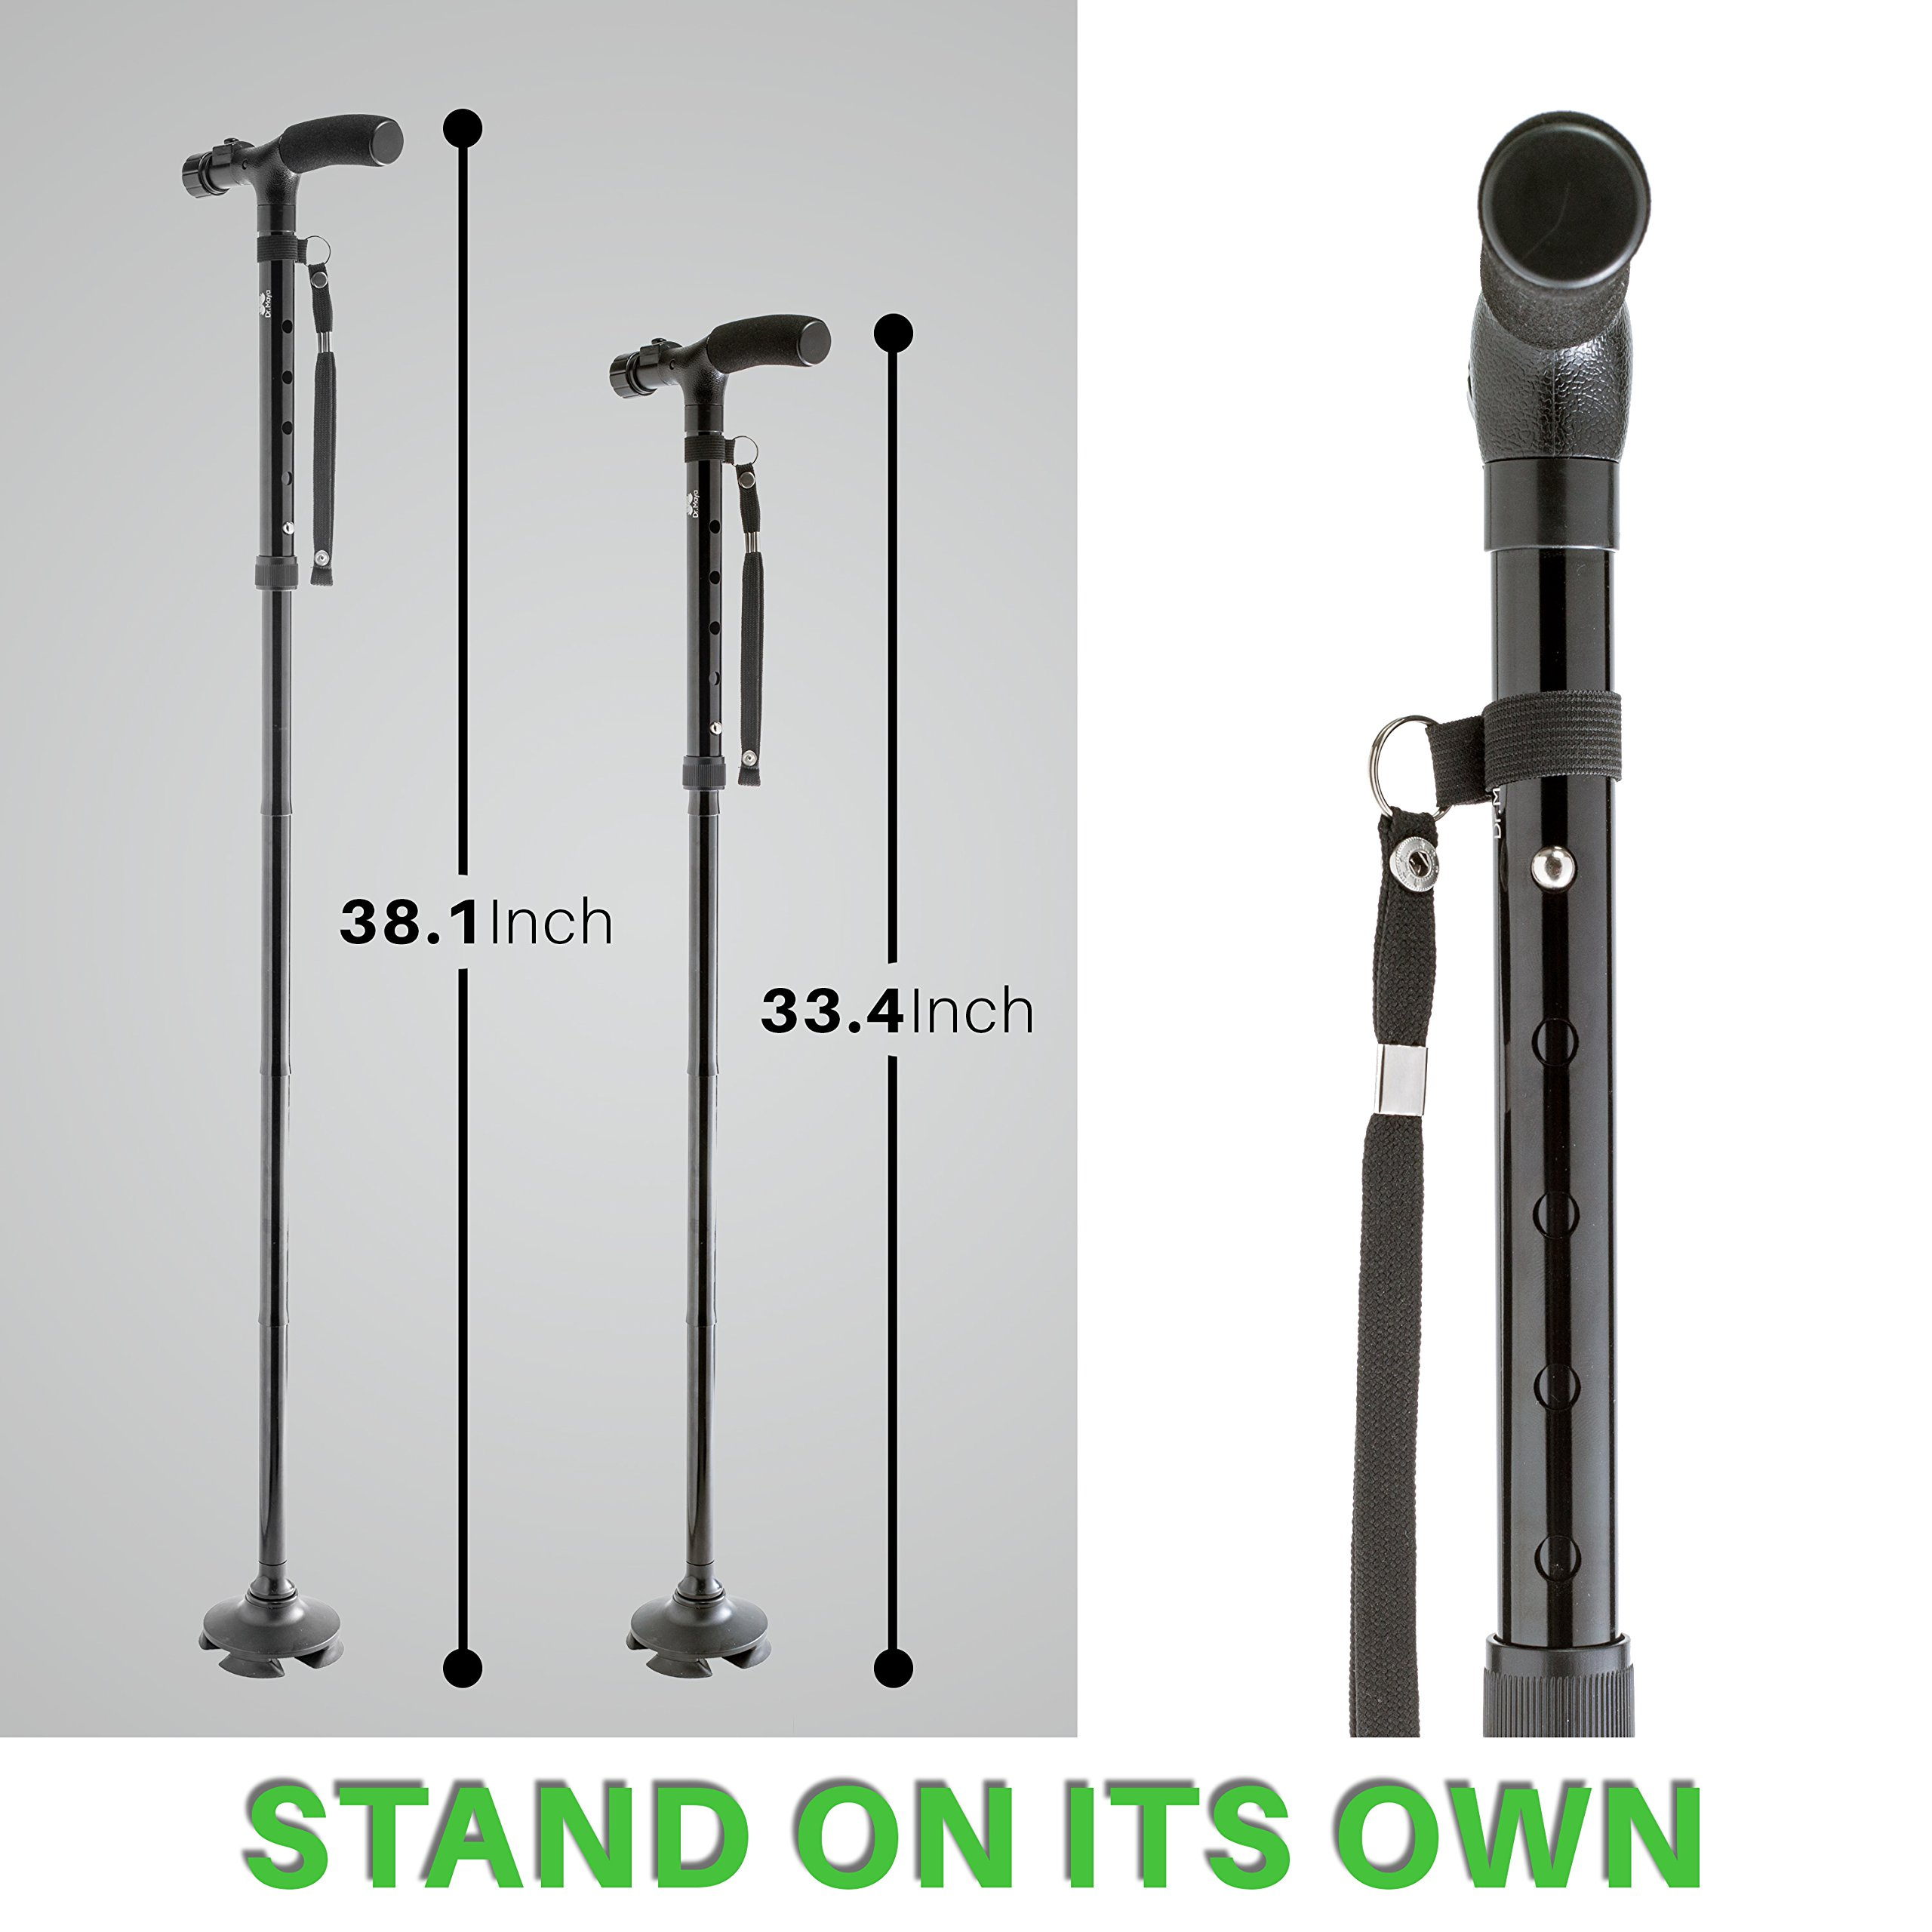 Walking Cane by Dr. Maya with Free Cane Tips & LED Lights - Lightweight, Adjustable, Foldable, Pivoting Base, Quad Travel Balance Stick Support for Elderly Men and Women - Walker Gift for Seniors! by Dr. Maya (Image #5)